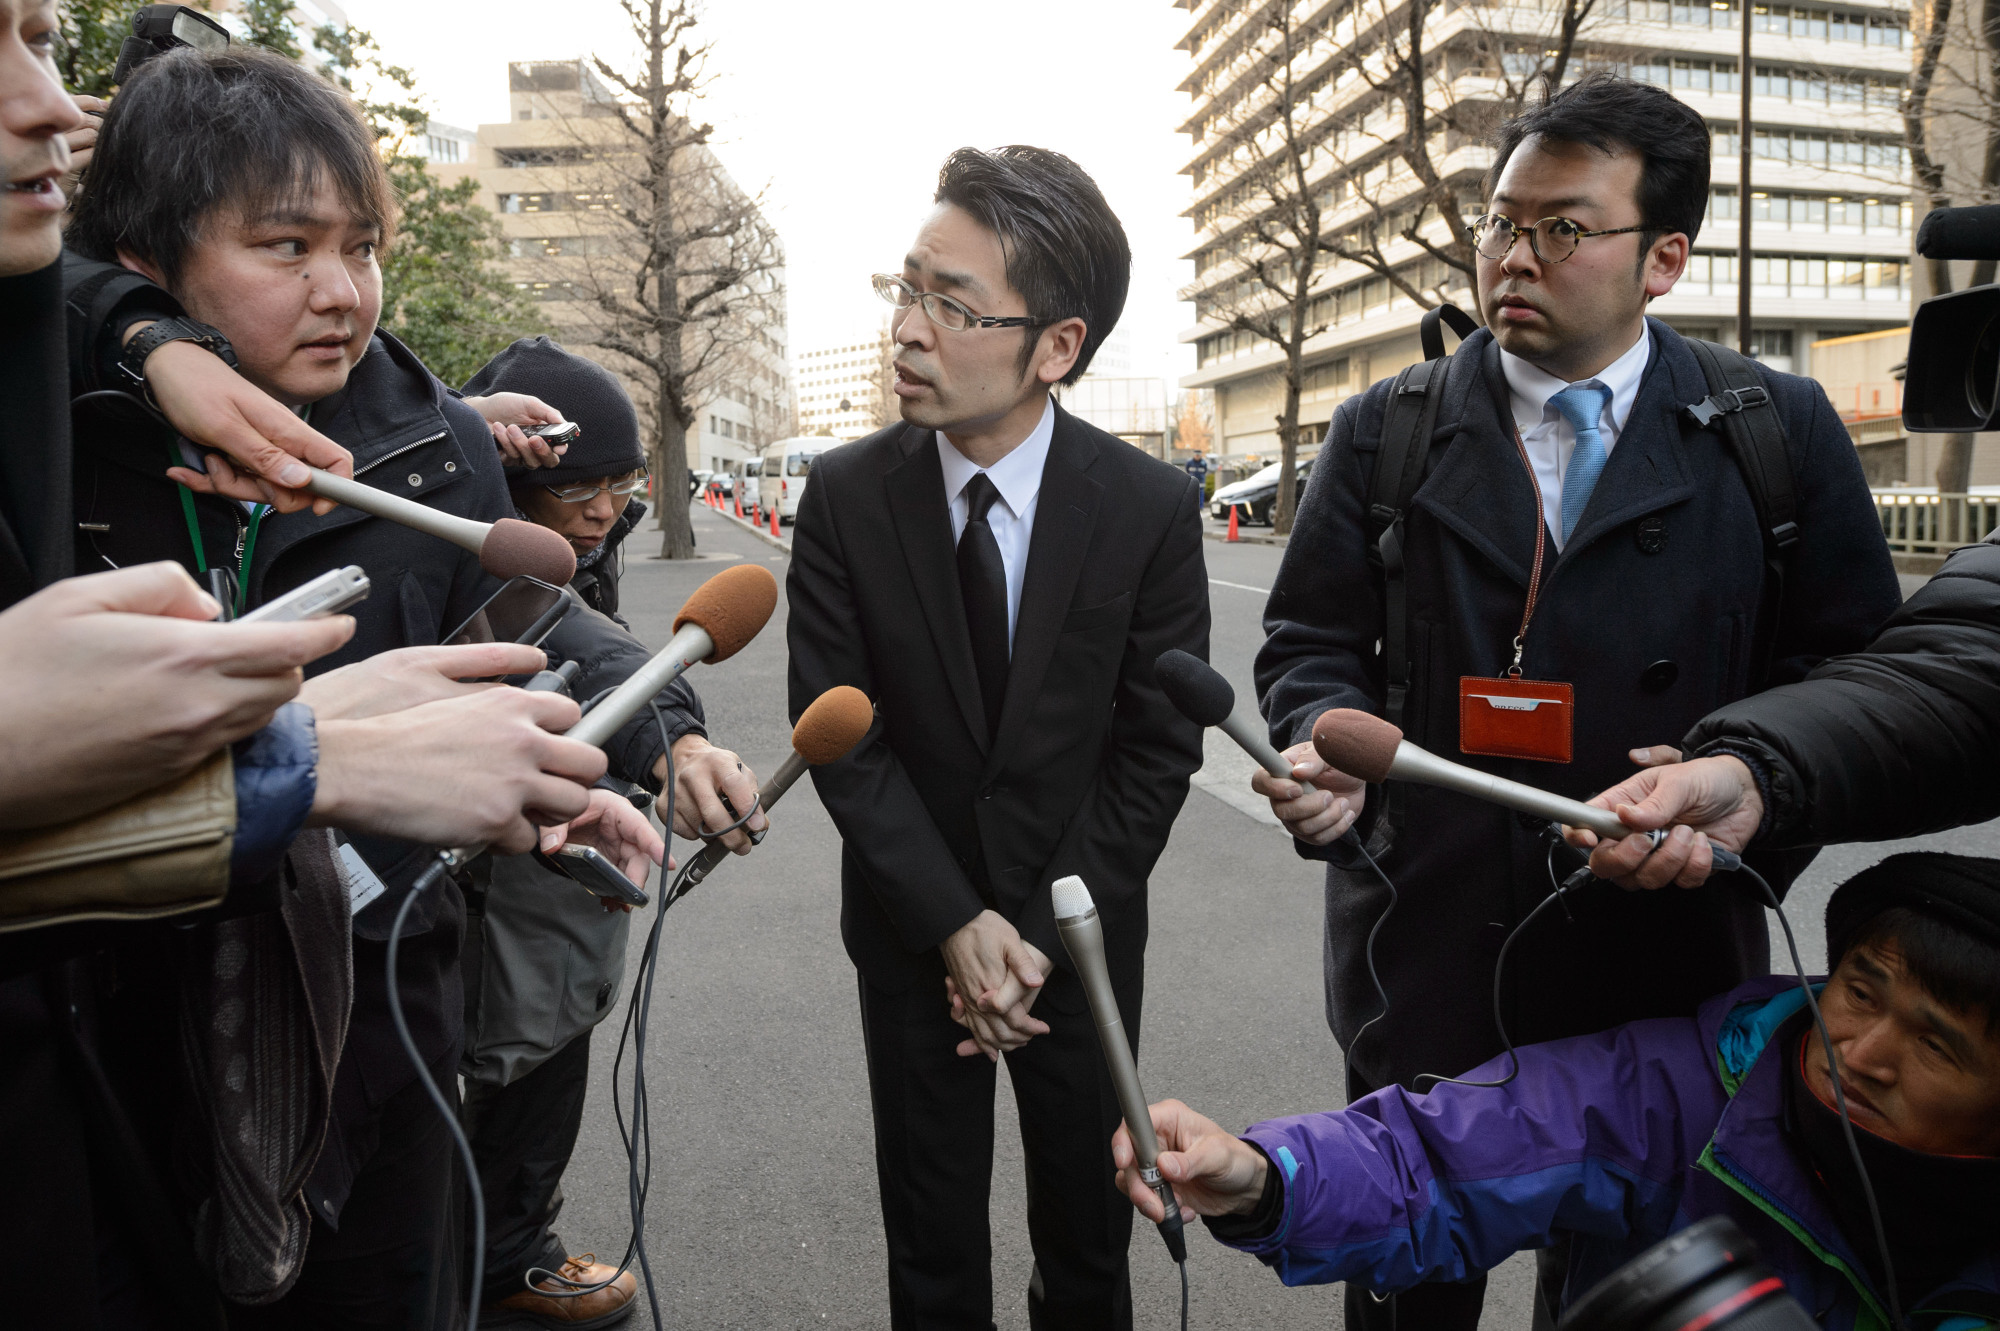 Coincheck Chief Operating Officer Yusuke Otsuka speaks to reporters outside the Financial Services Agency in Tokyo on Feb. 13. Coincheck, which lost ¥58 billion to hackers in January, had to explain to the FSA how the hack occurred and its plans for improving its security. | BLOOMBERG